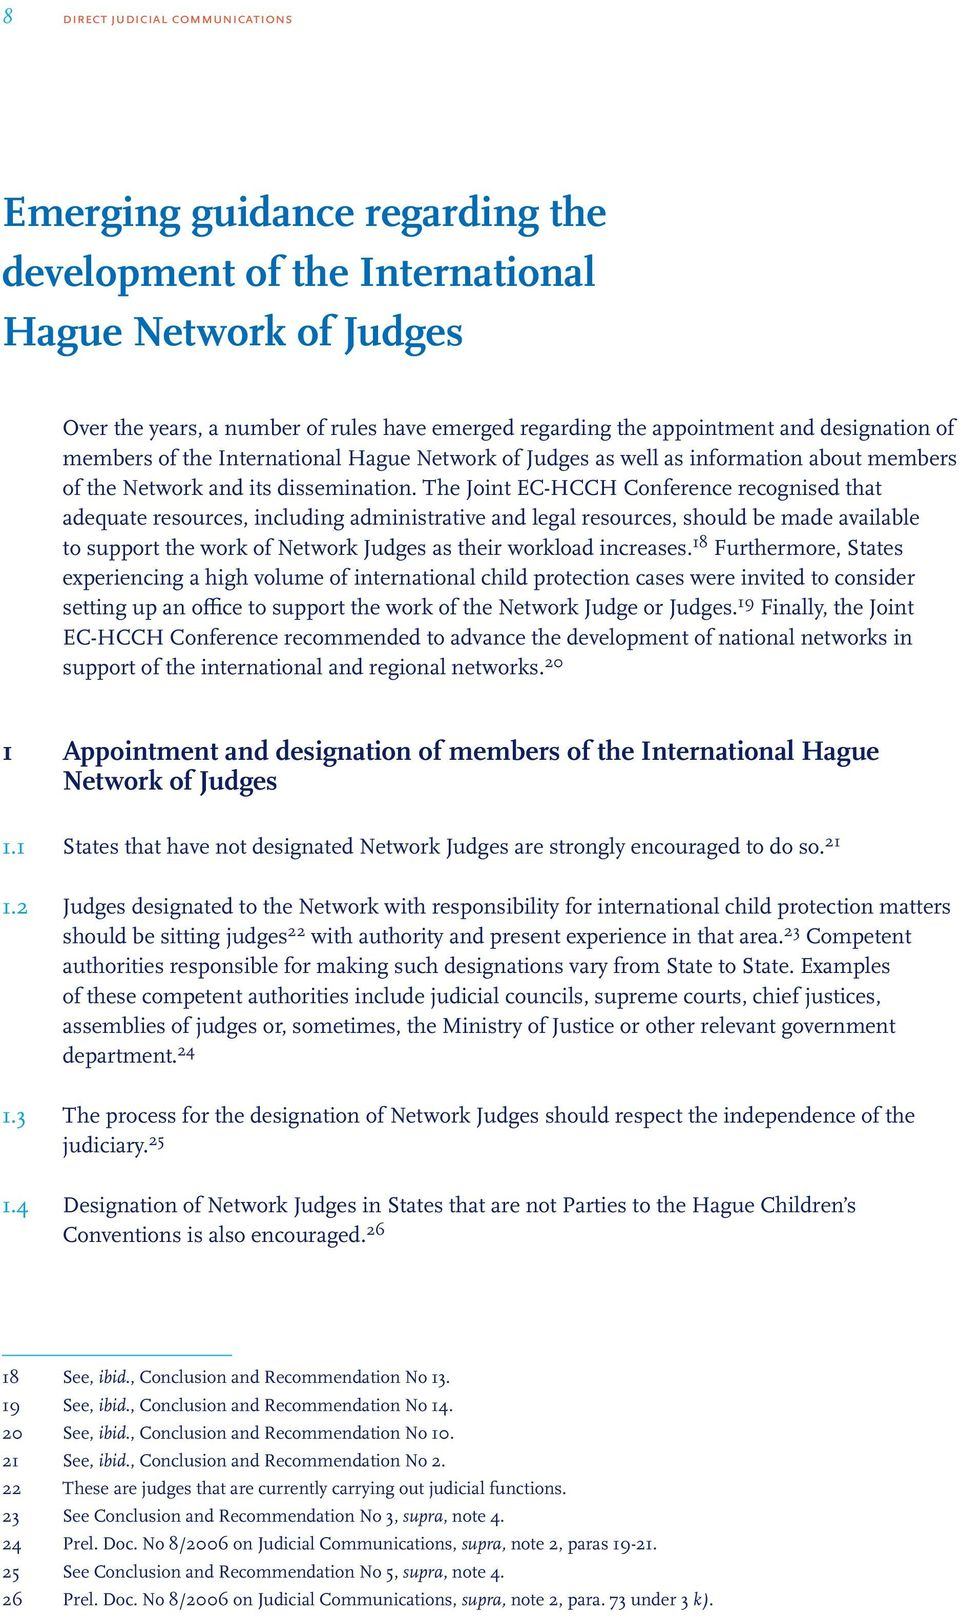 The Joint EC-HCCH Conference recognised that adequate resources, including administrative and legal resources, should be made available to support the work of Network Judges as their workload